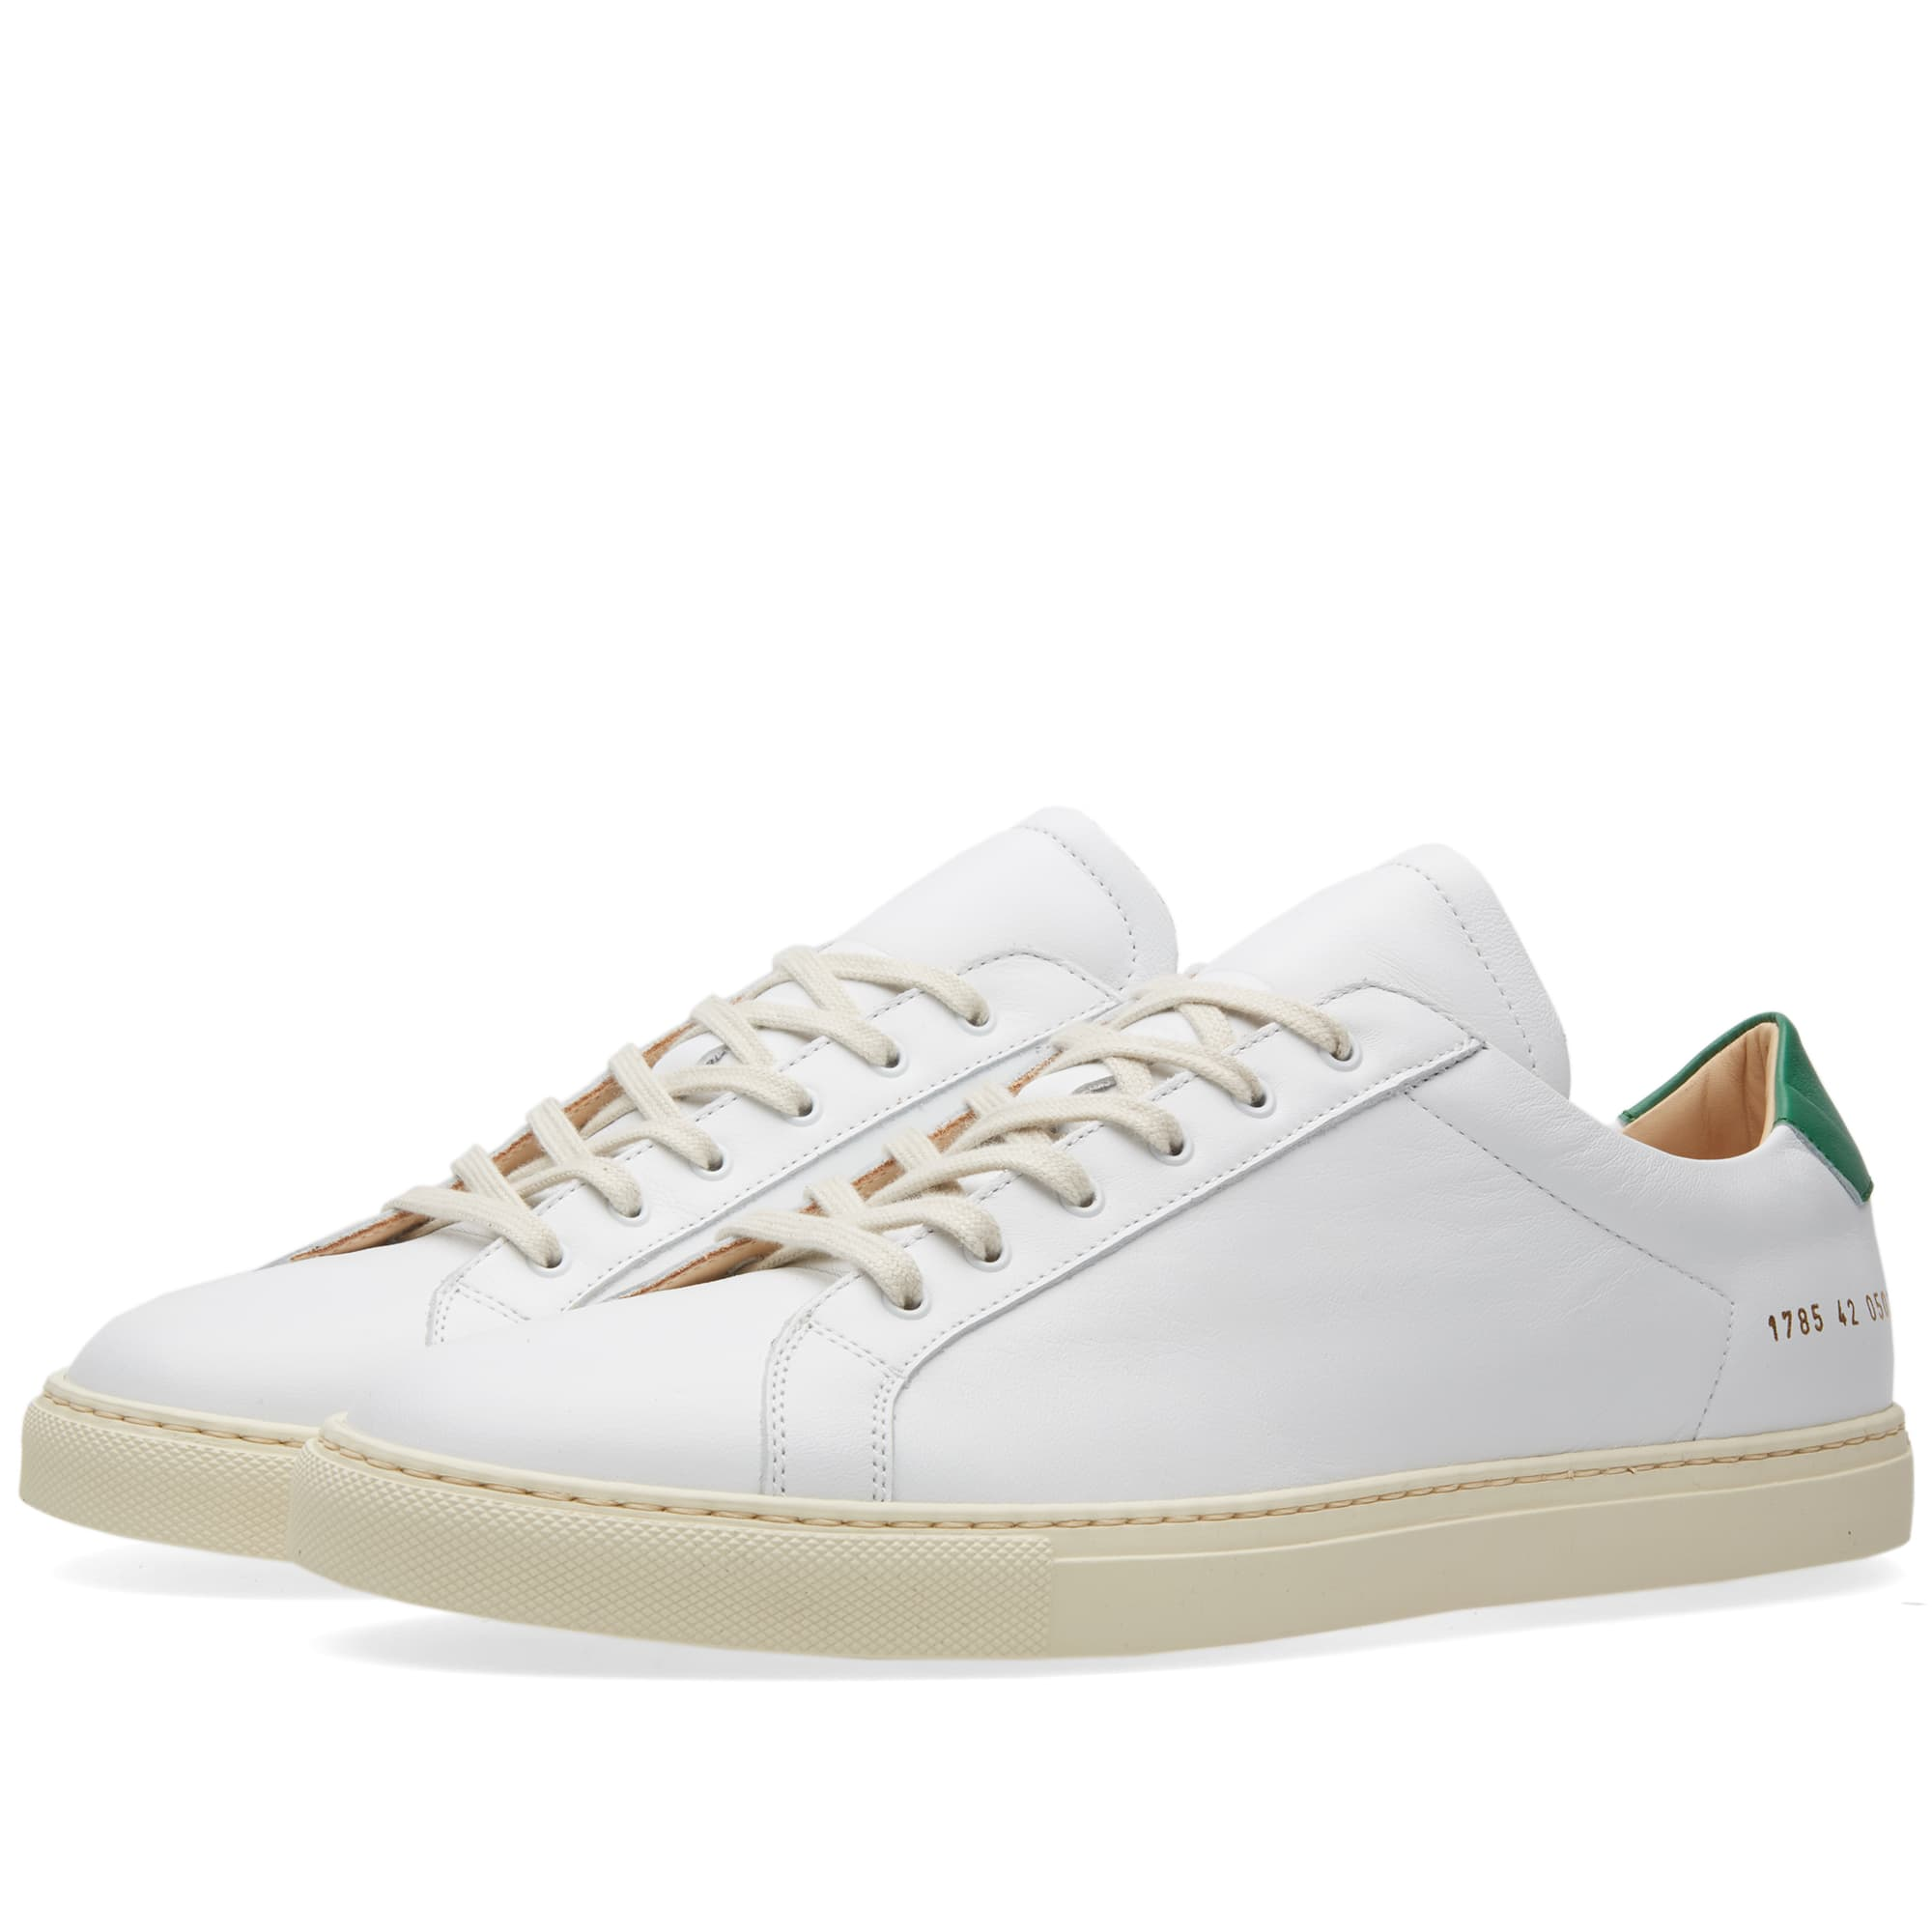 Common Projects Alternatives